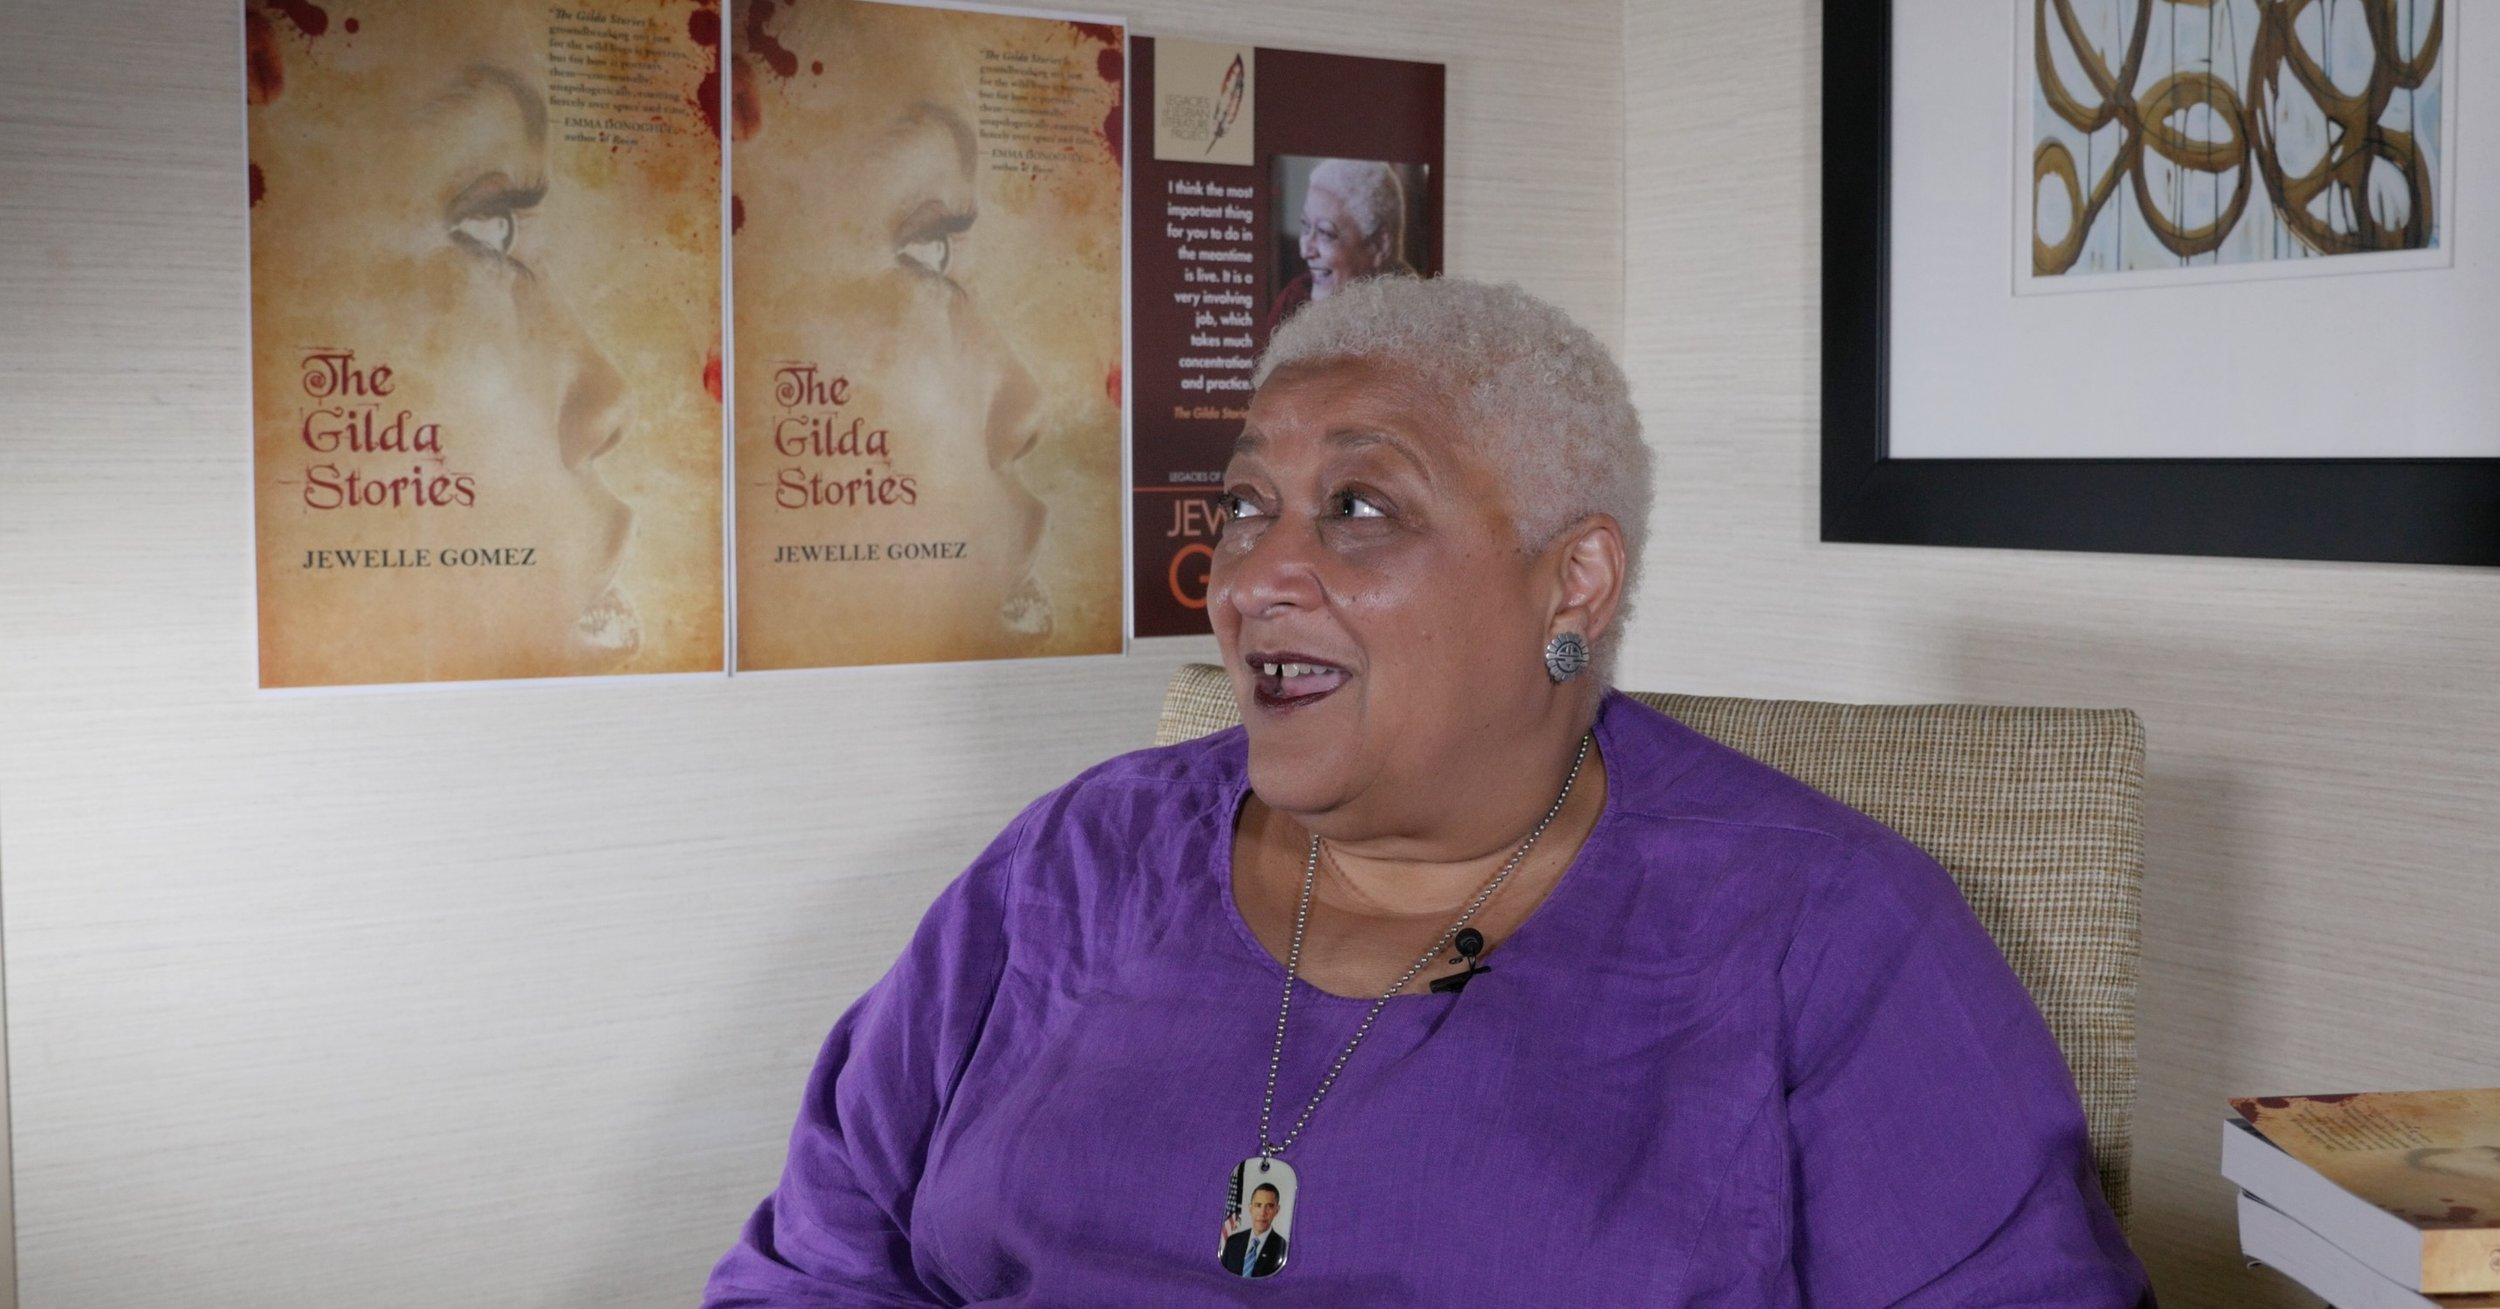 Jewelle Gomez gives a spirited interview